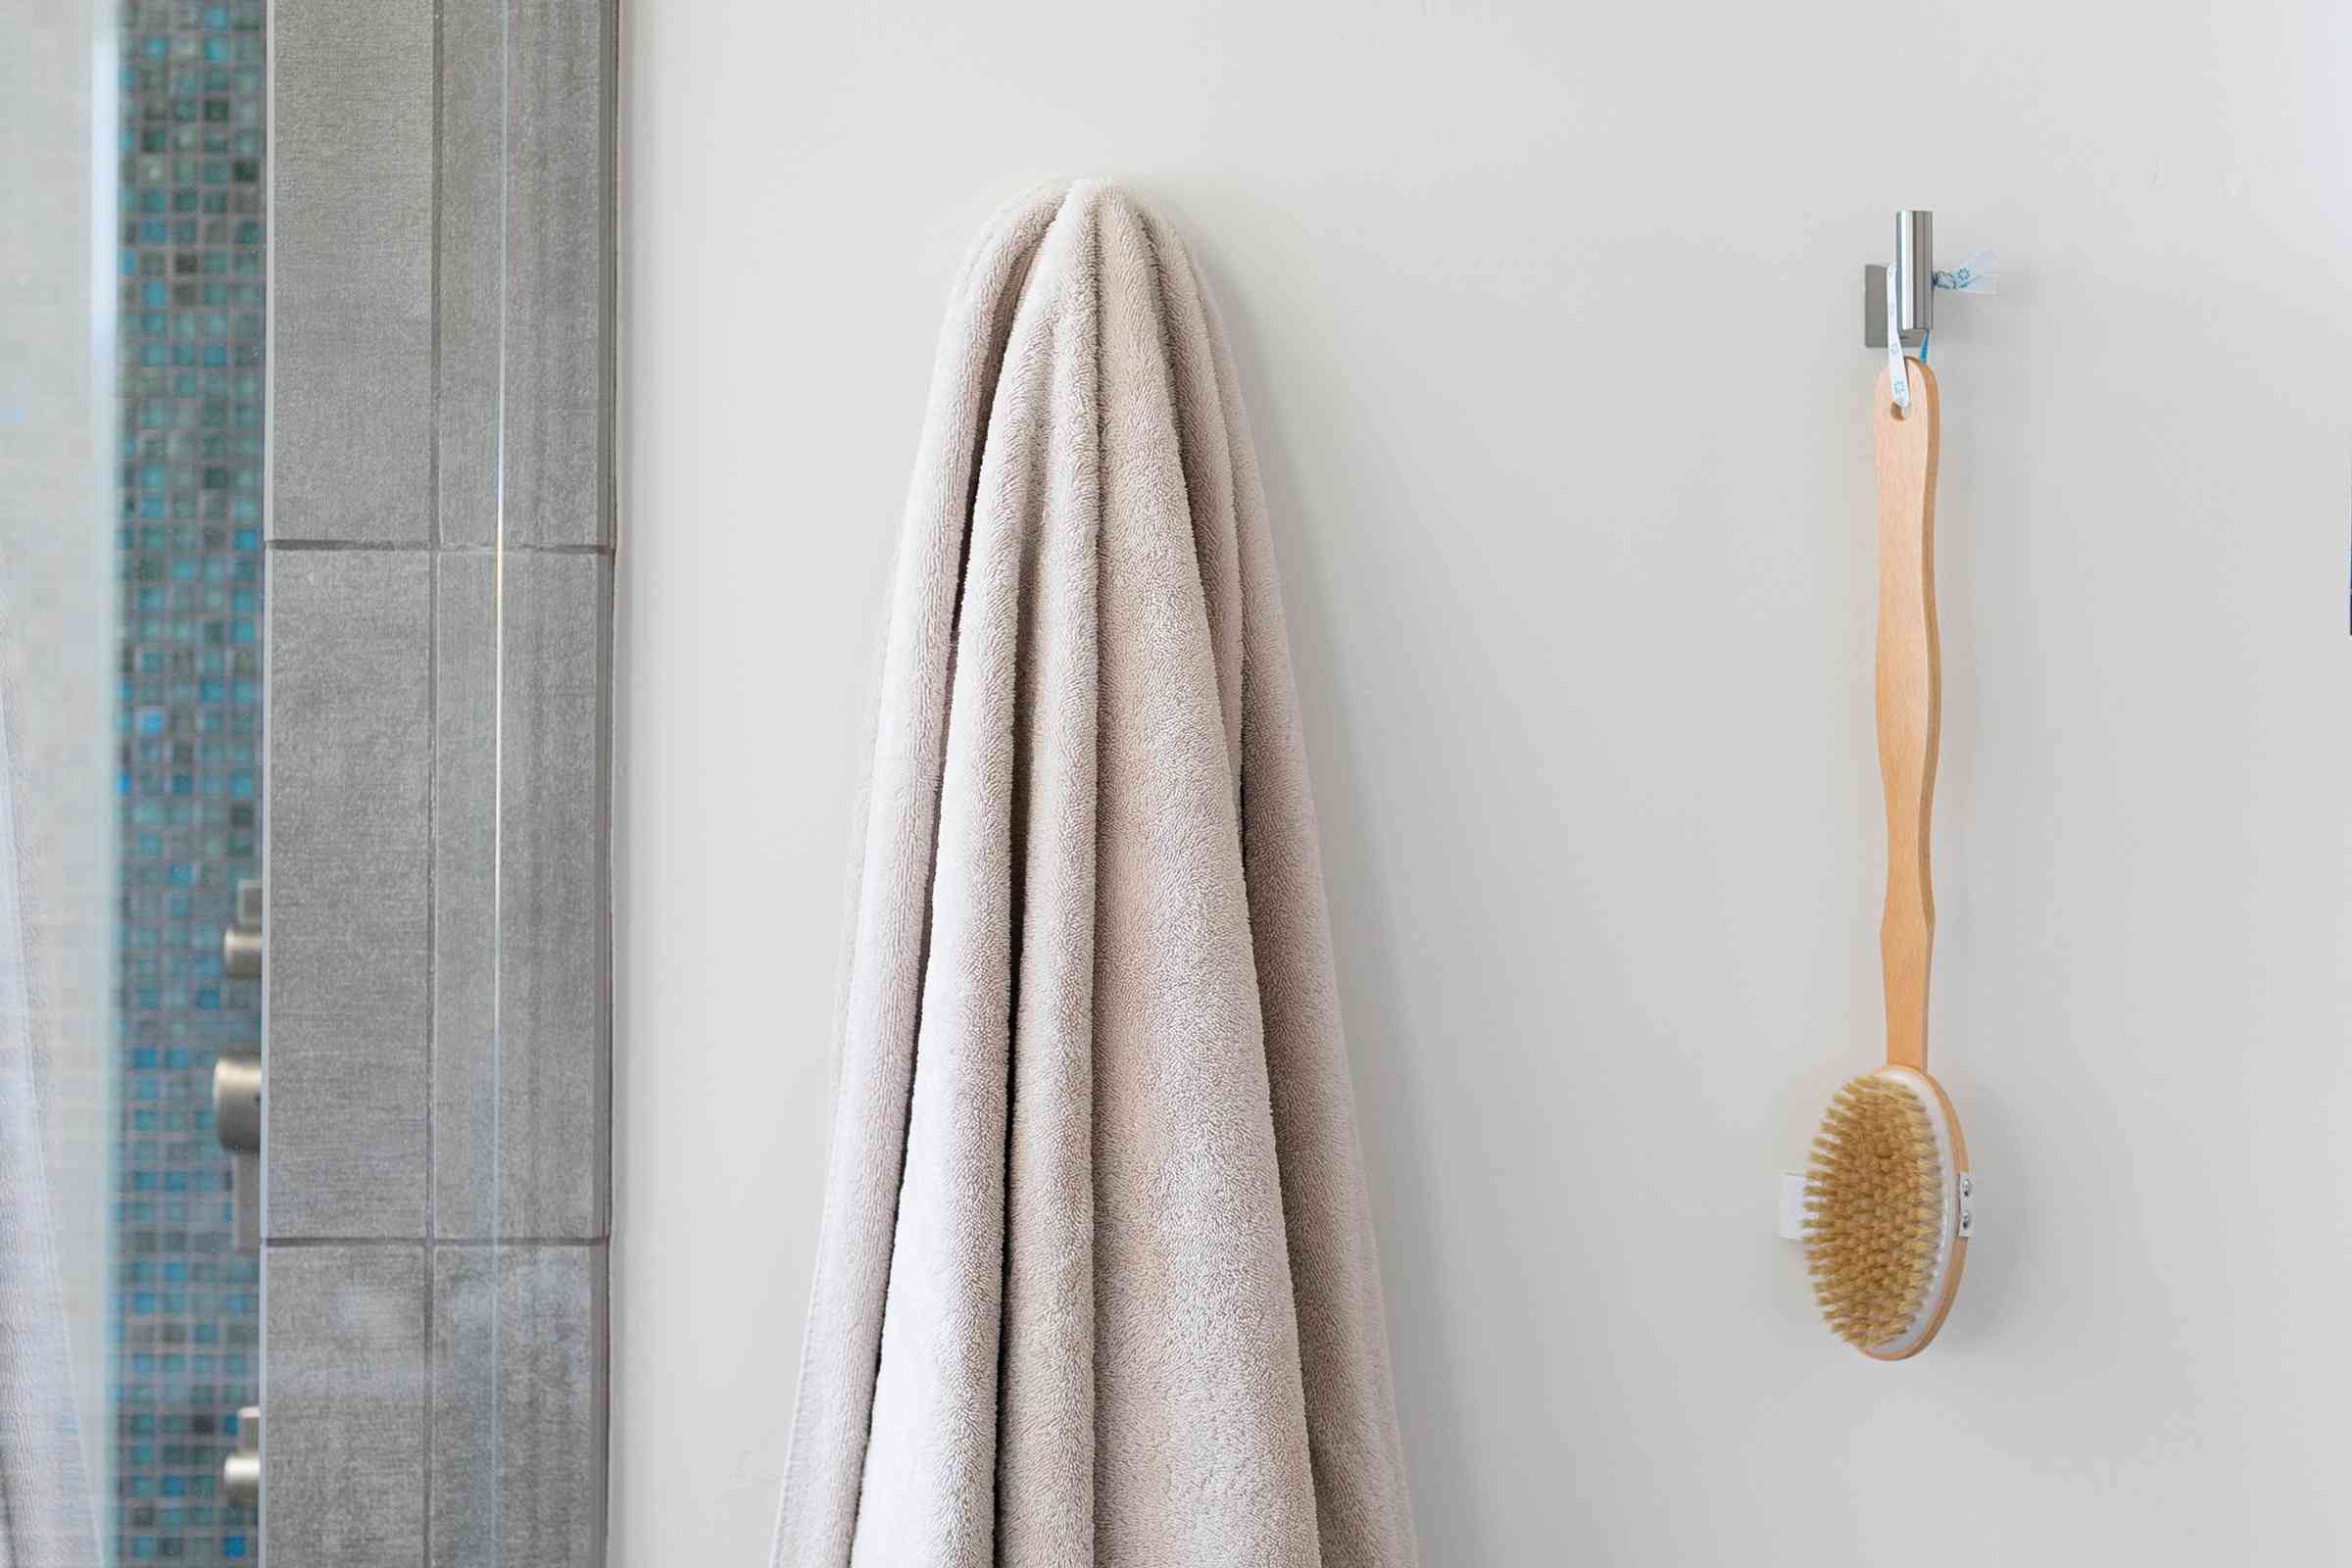 Bathroom hooks with towel and body brush hanging in guest bathroom